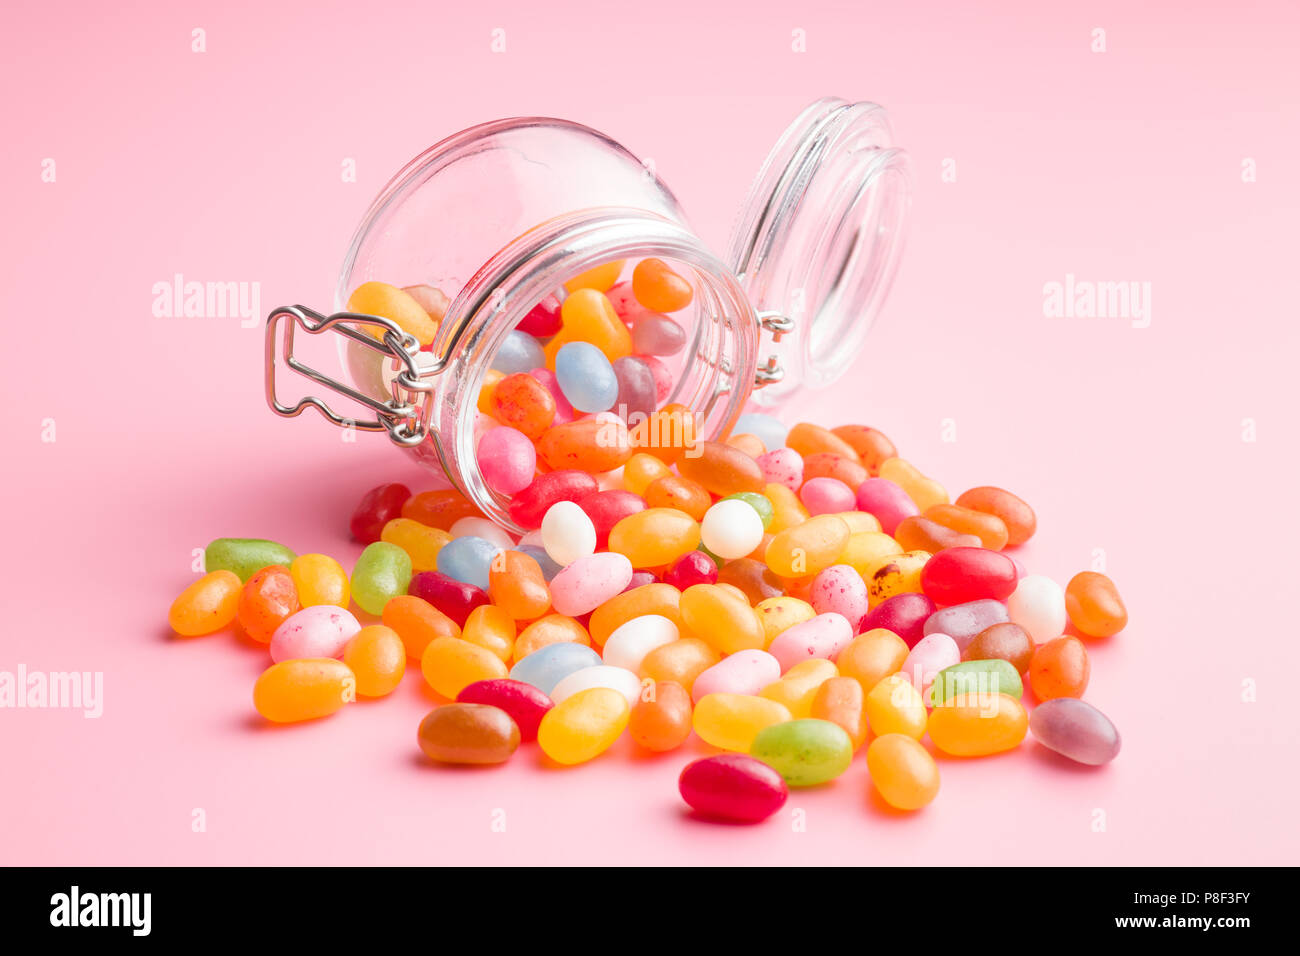 Candy Coloured Yellow Orange Glass Stock Photos & Candy Coloured ...